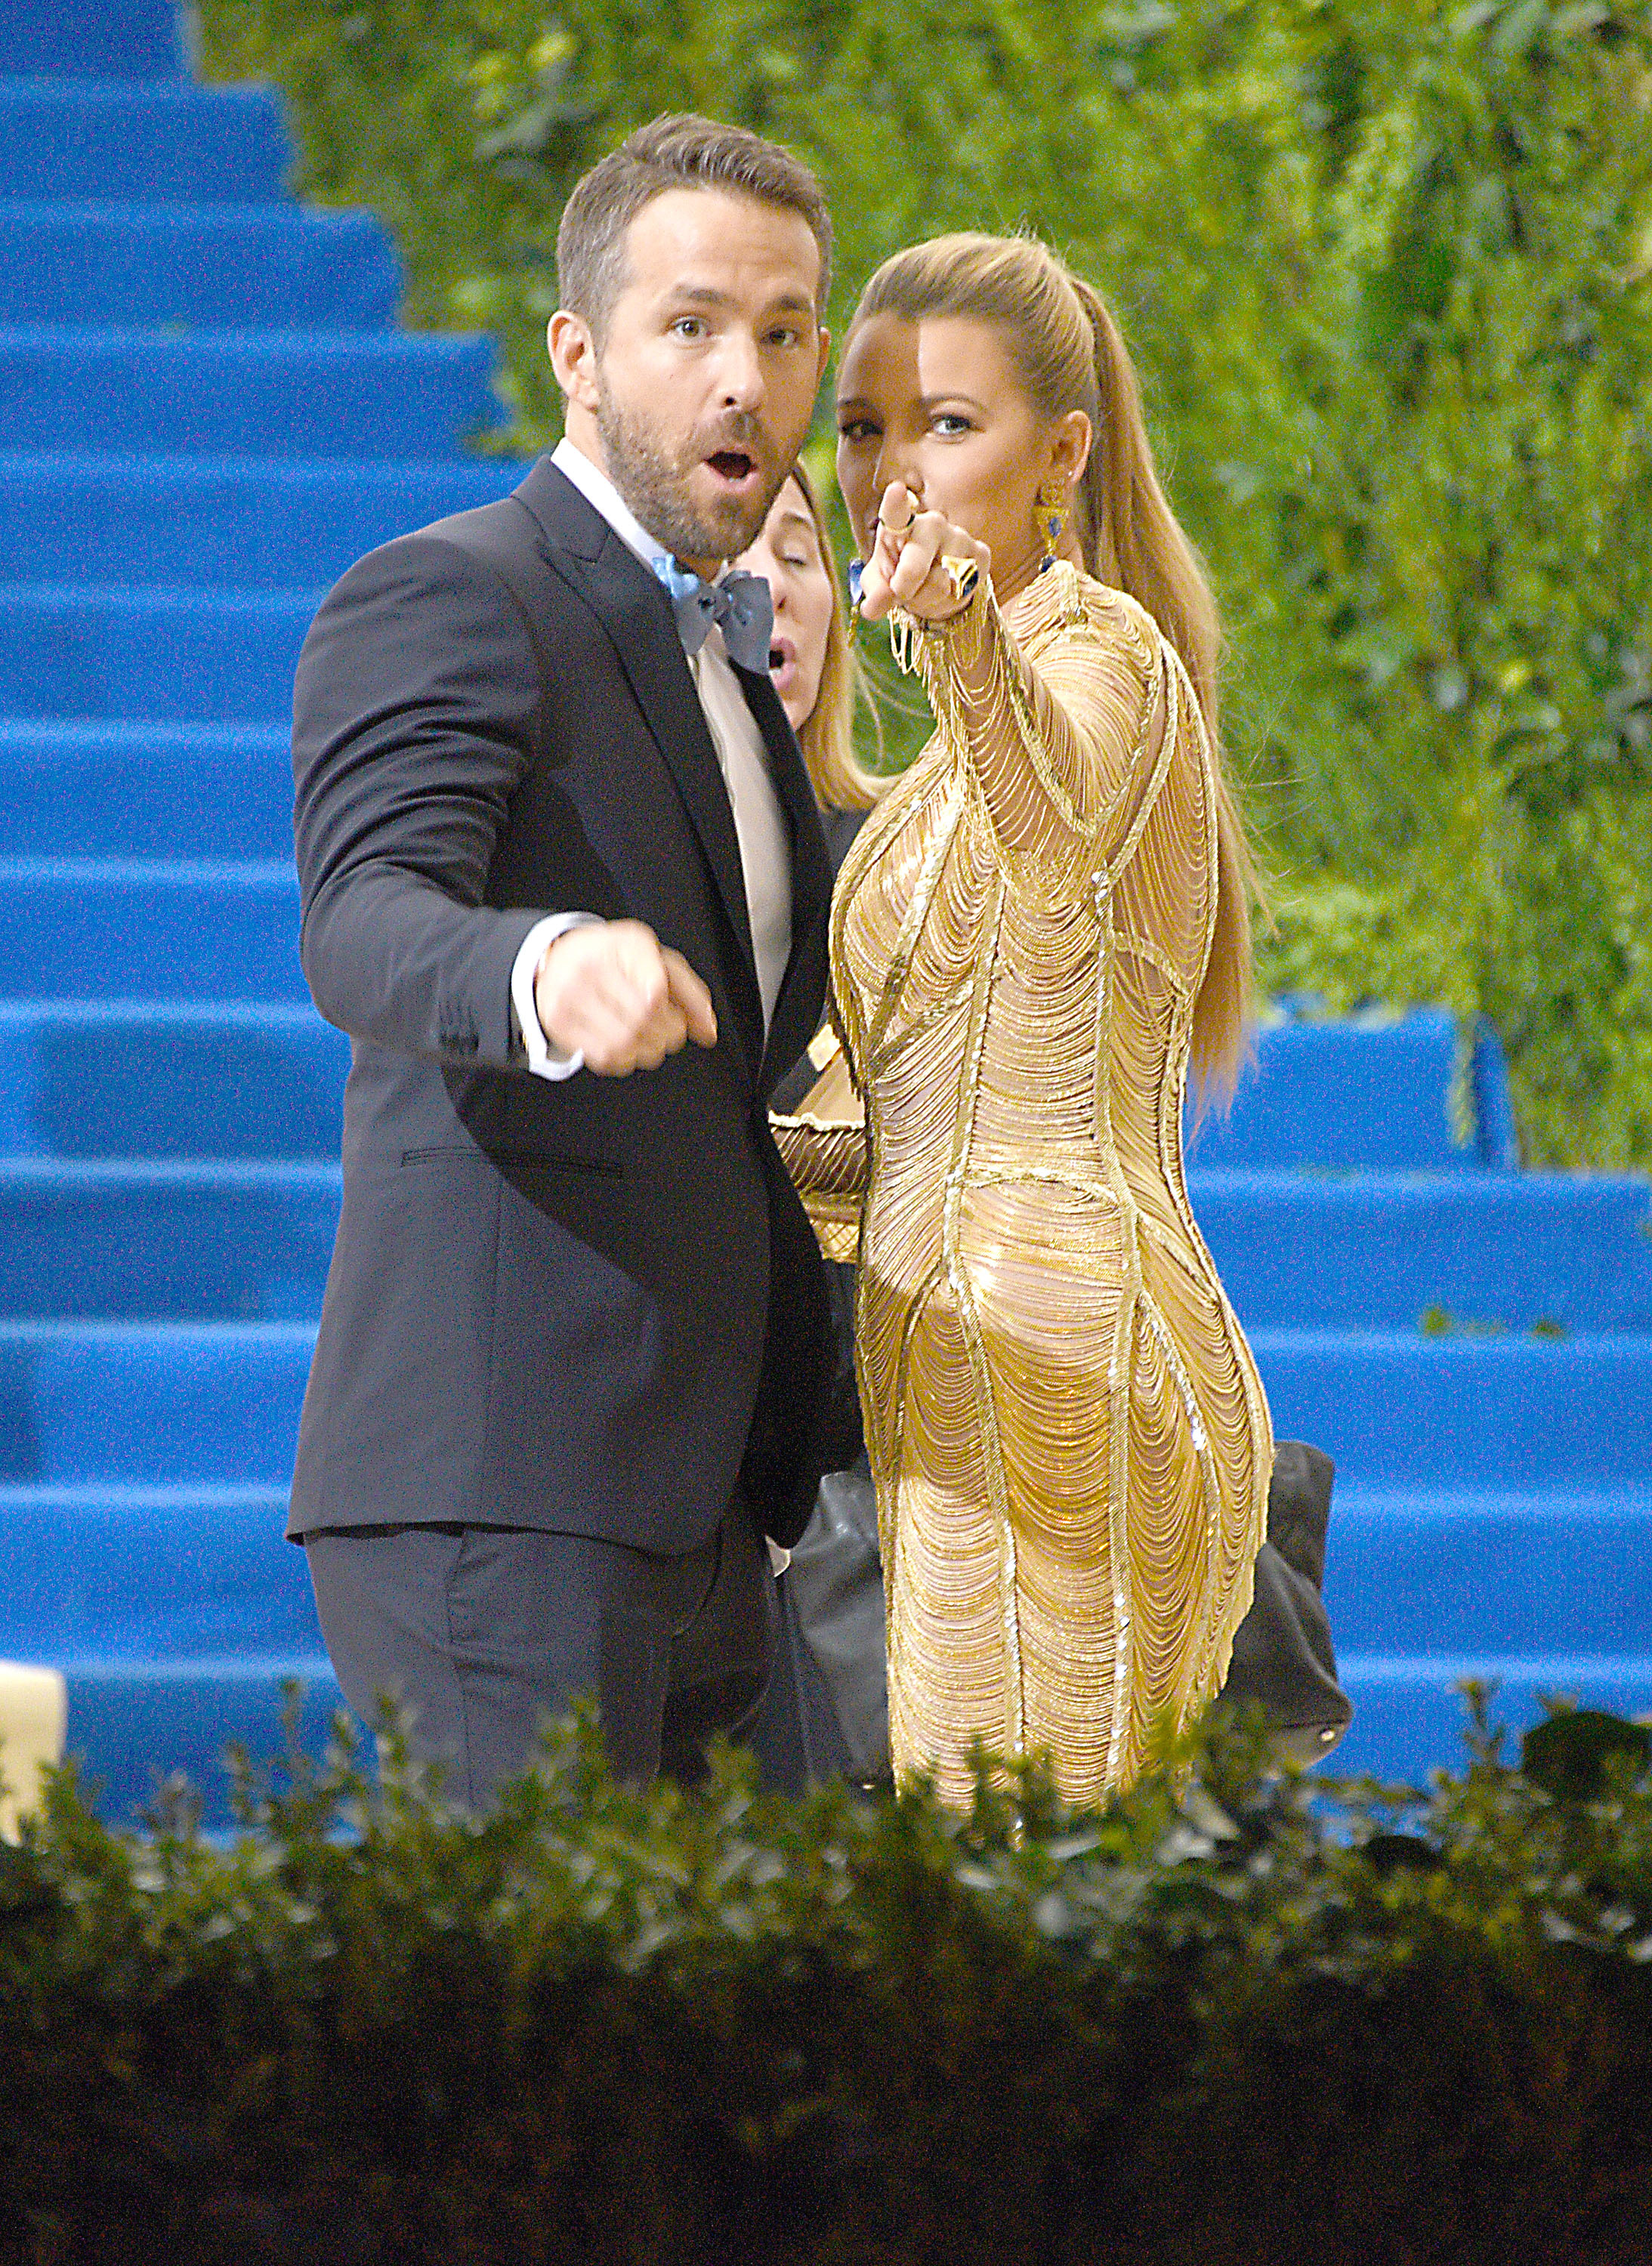 Blake Lively and husband Ryan Reynolds. Credit: PA